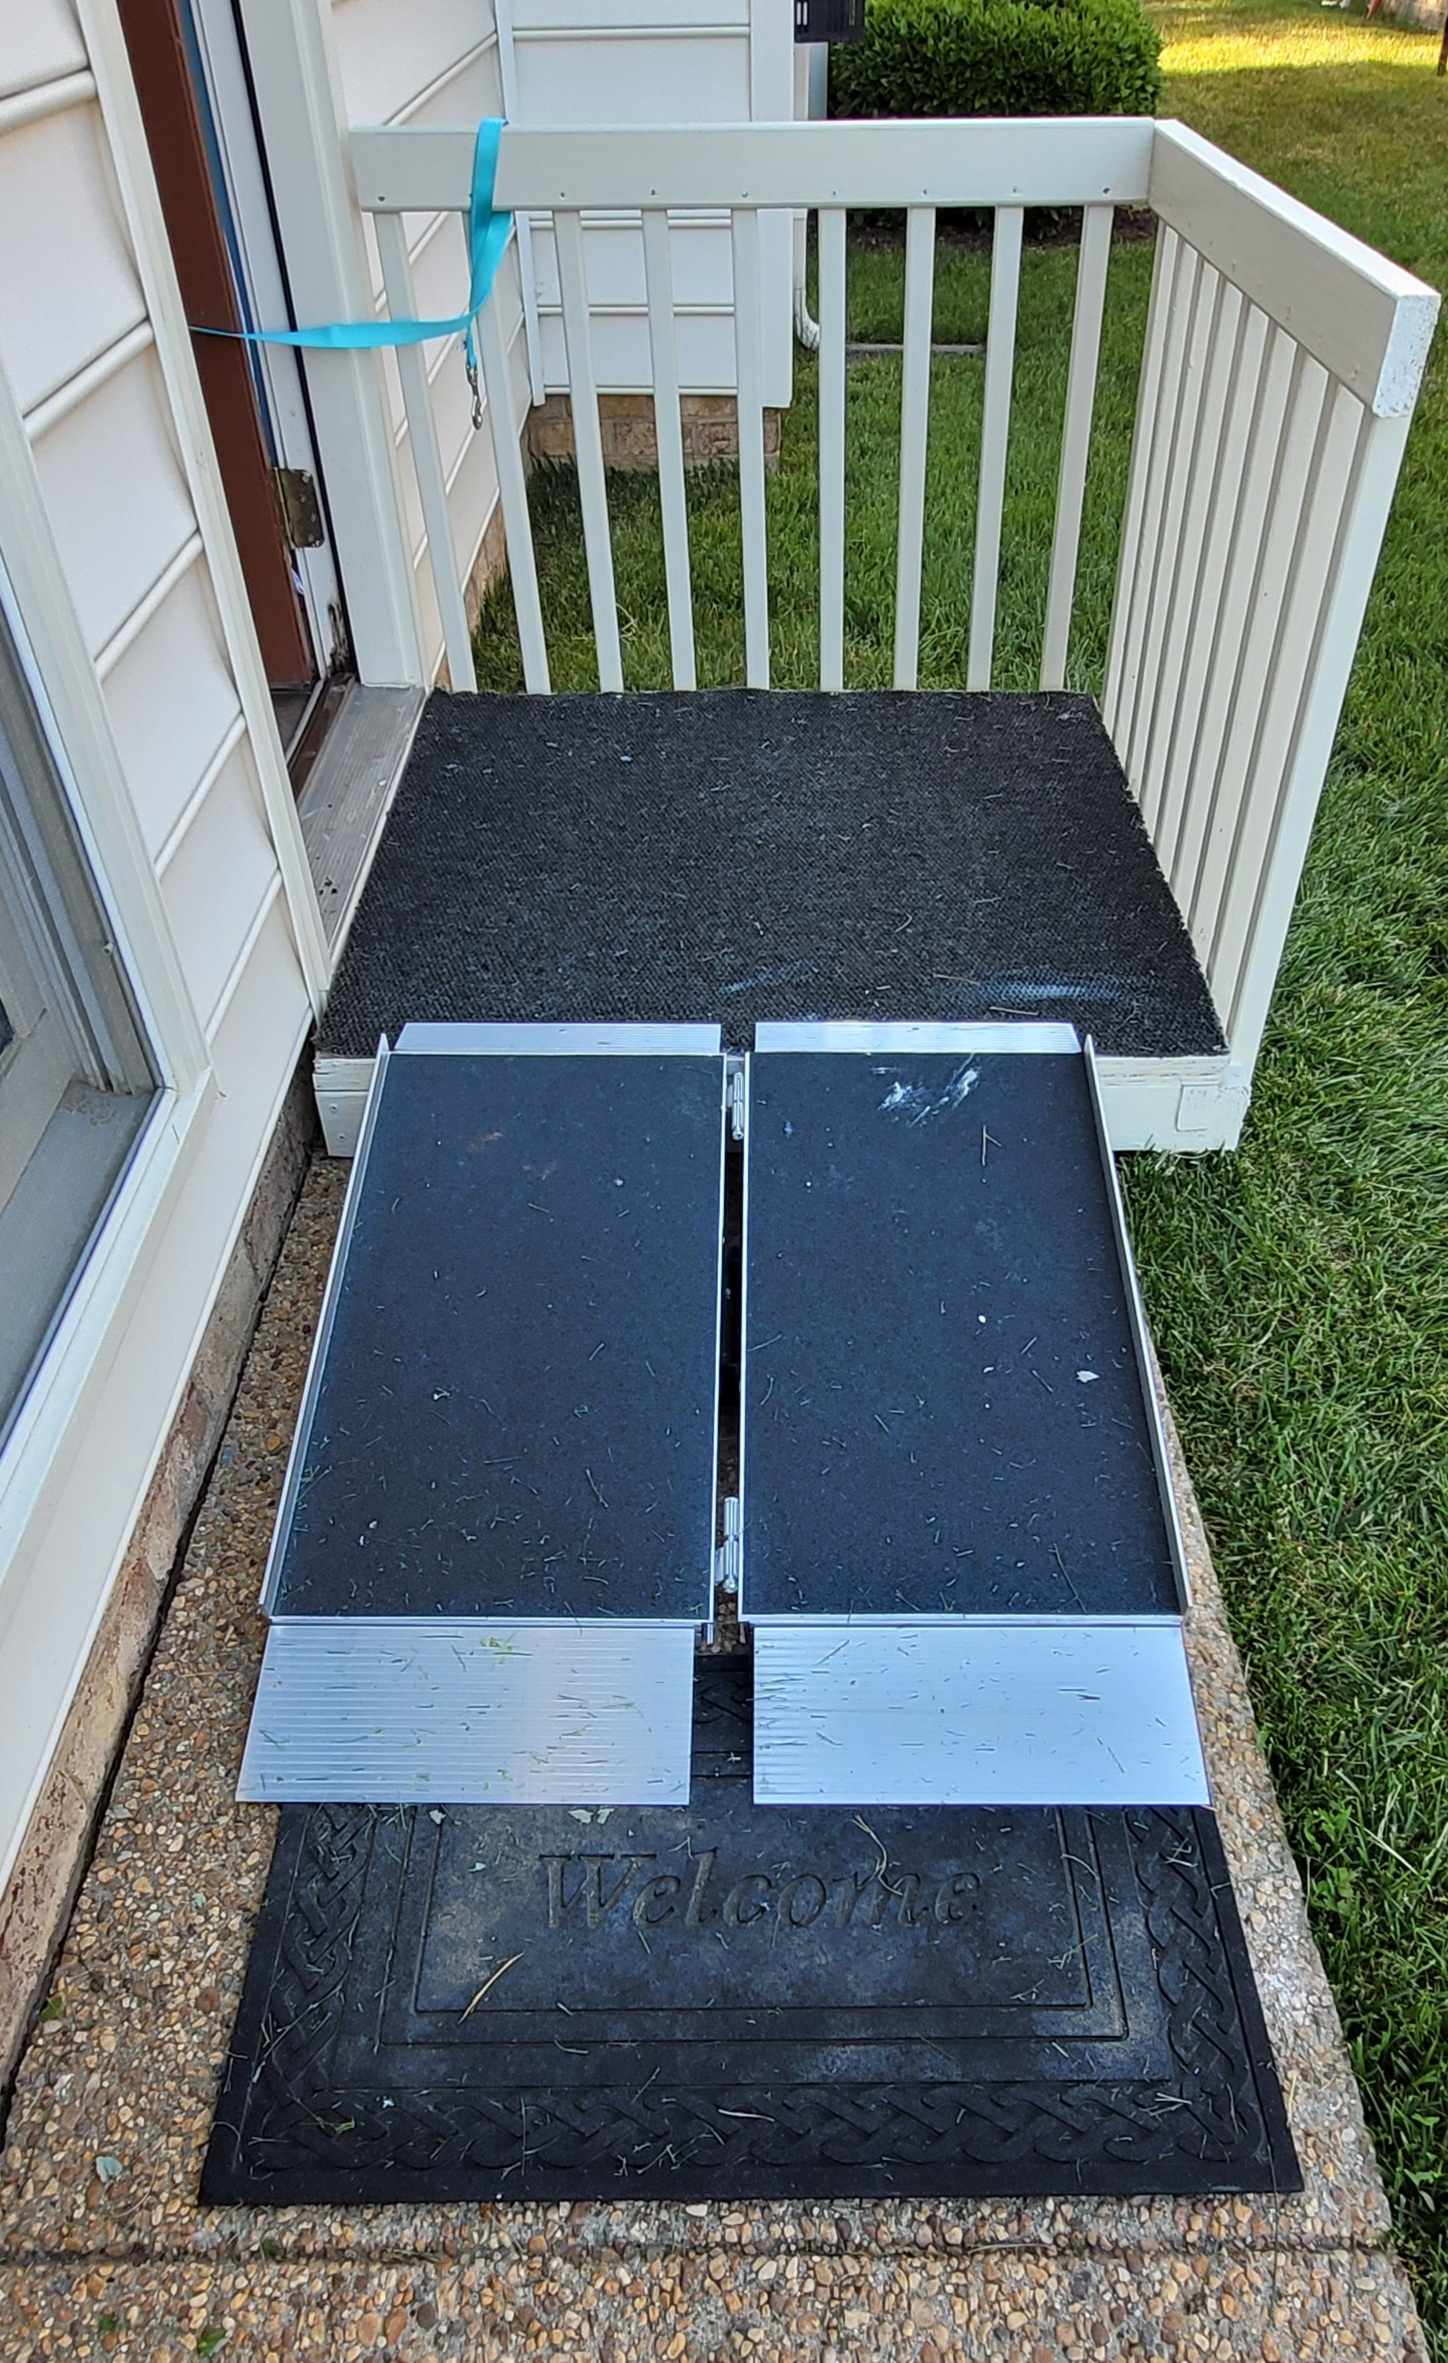 Completed, painted home built platform with suitcase ramp and aid to close door.